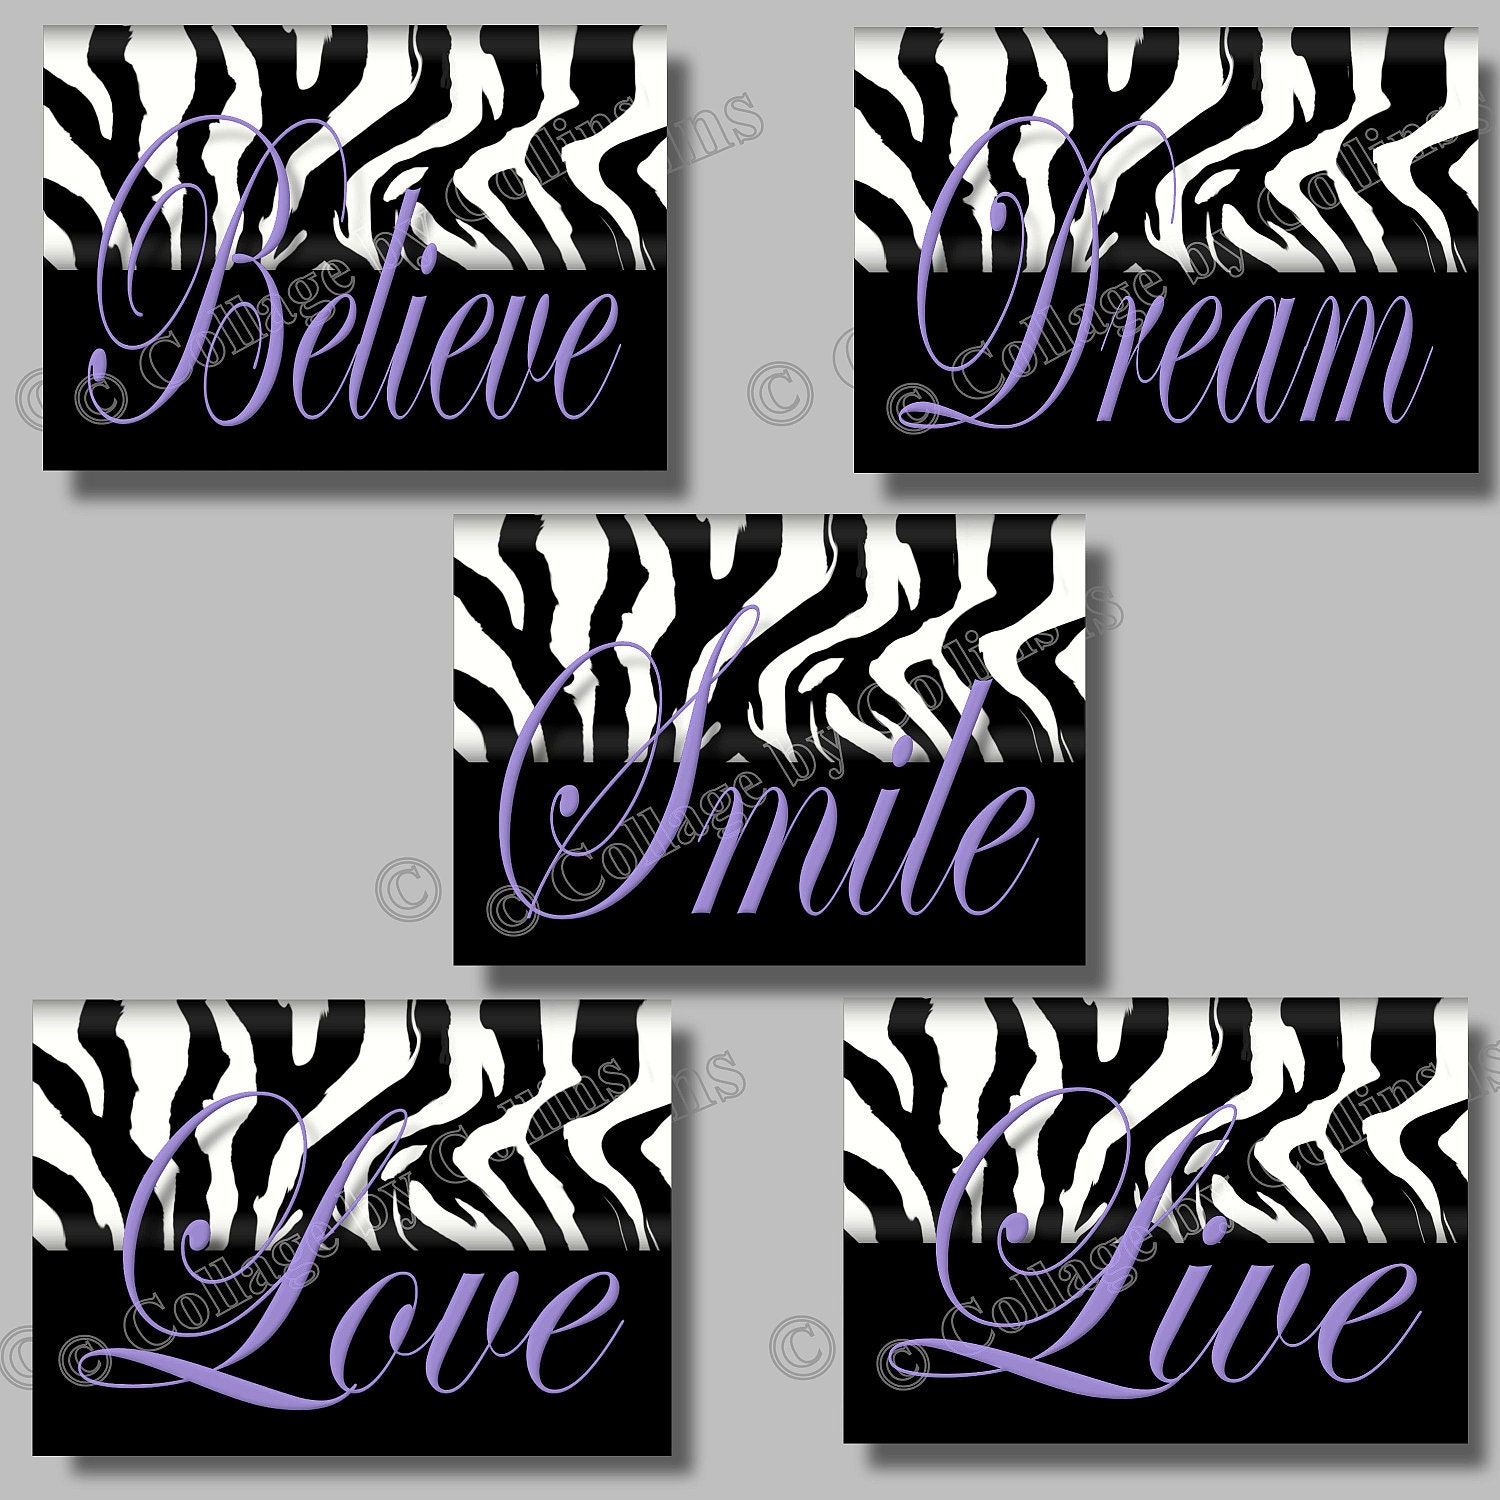 purple zebra print inspirational smile dream live love believe